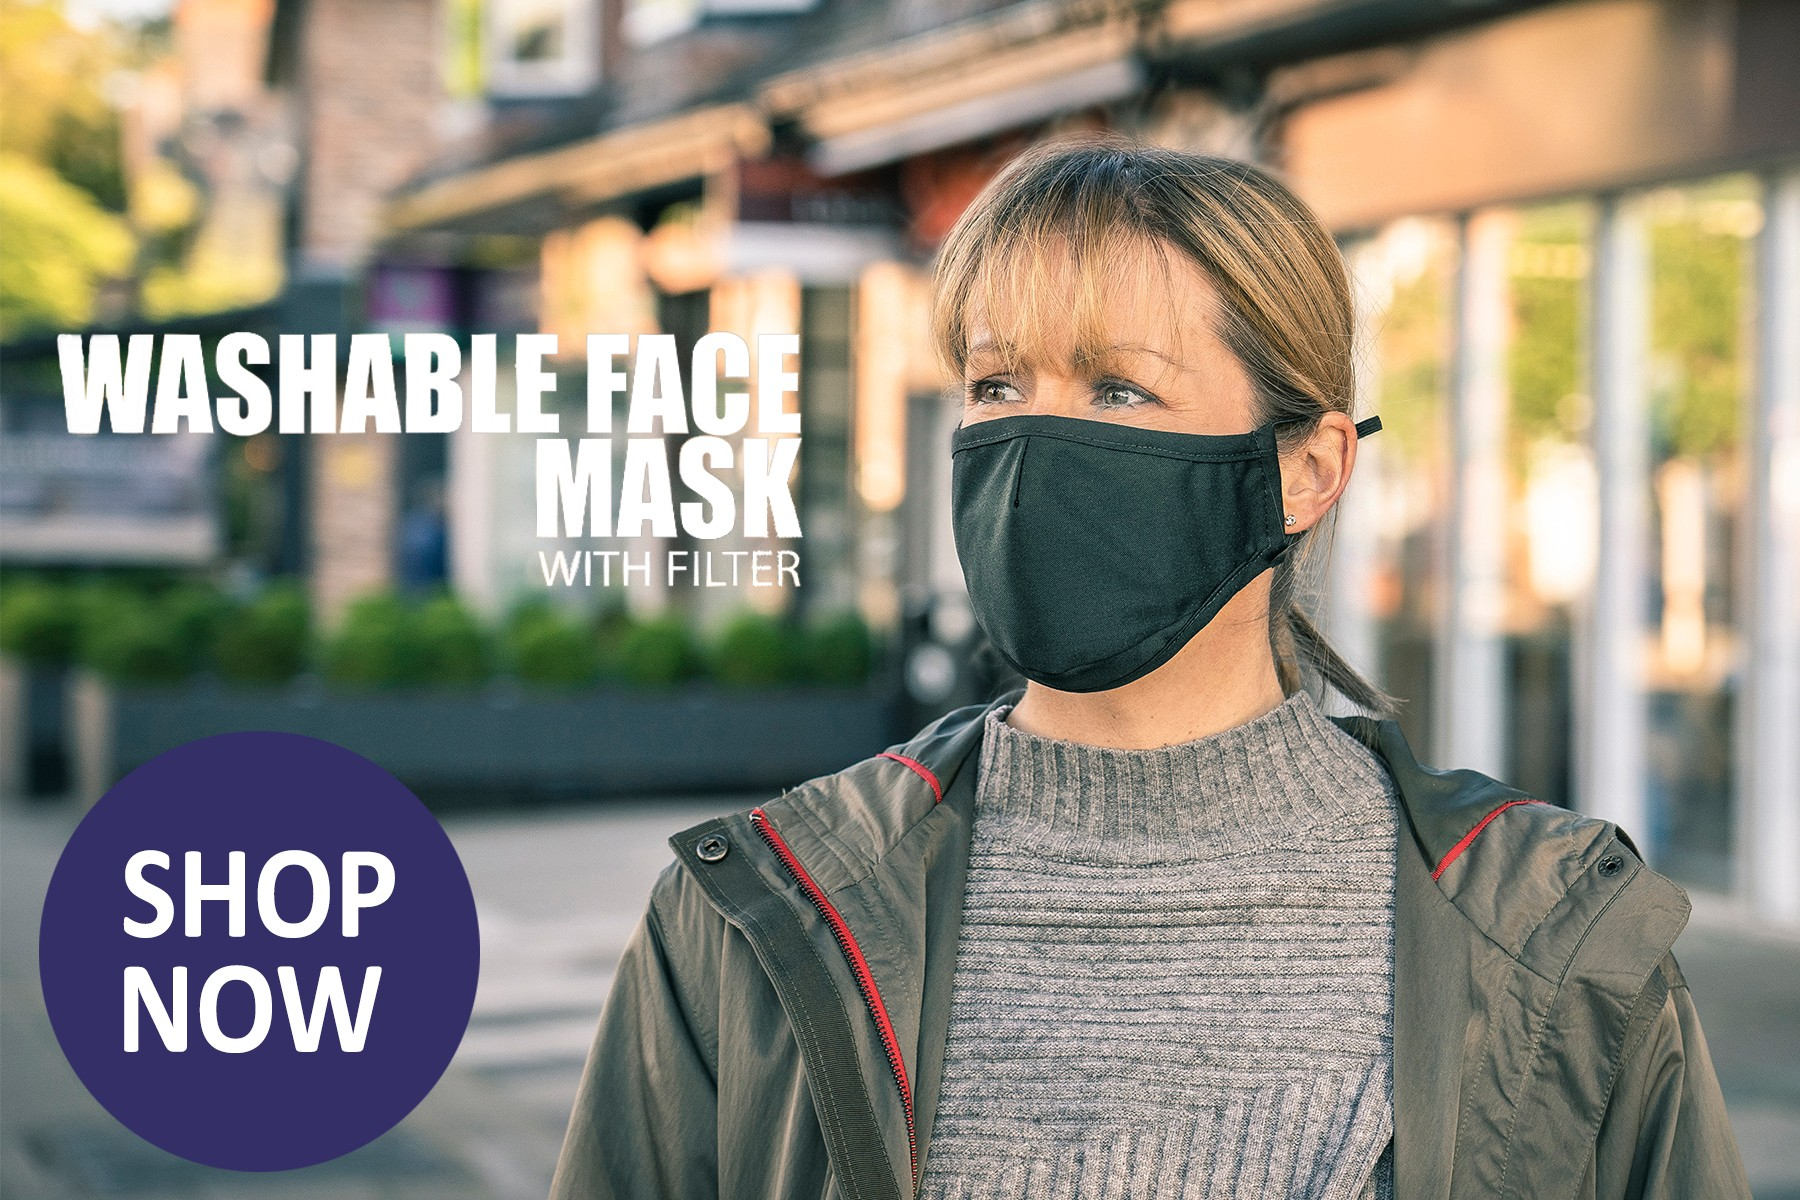 Shop Now for Wearable Fask Mask with filter